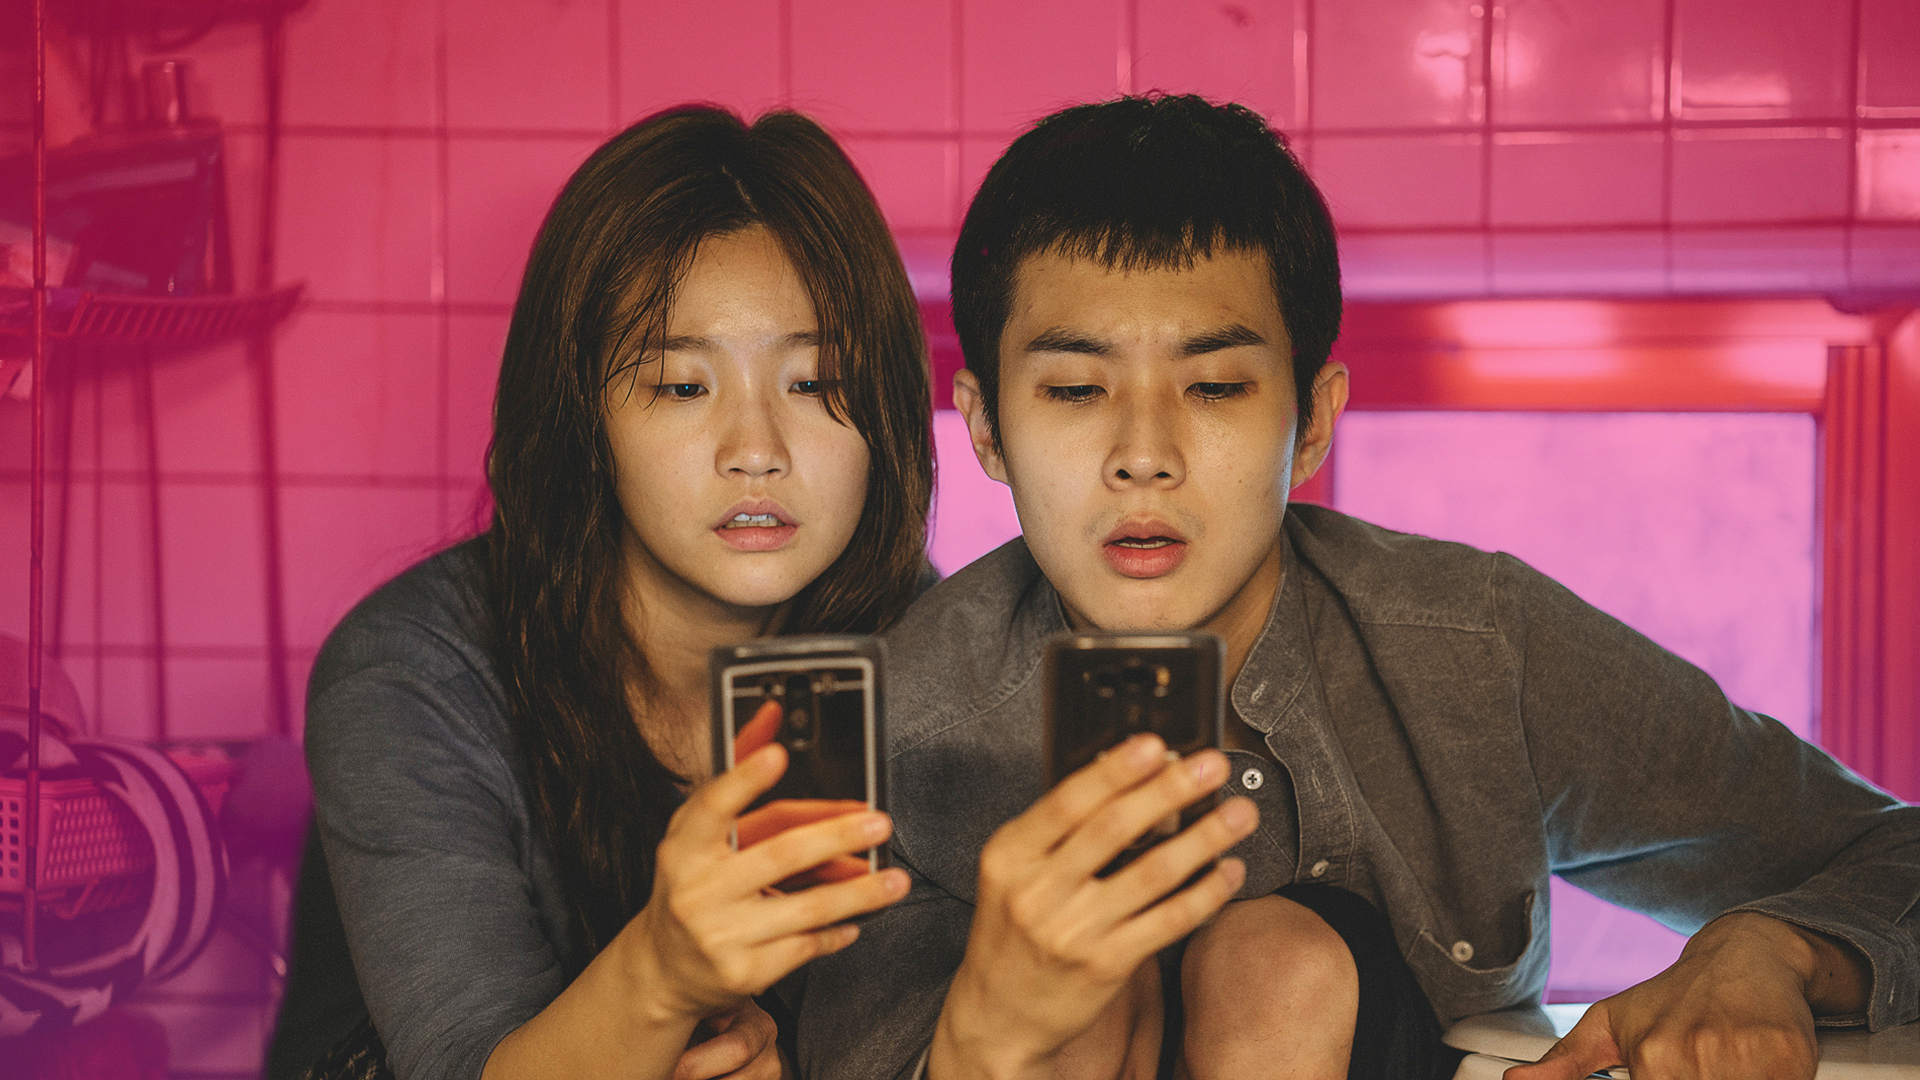 Ki-jung (Park So-dam) and Ki-woo (Choi Woo-shik) from the film 'Parasite' stare intently at their phones